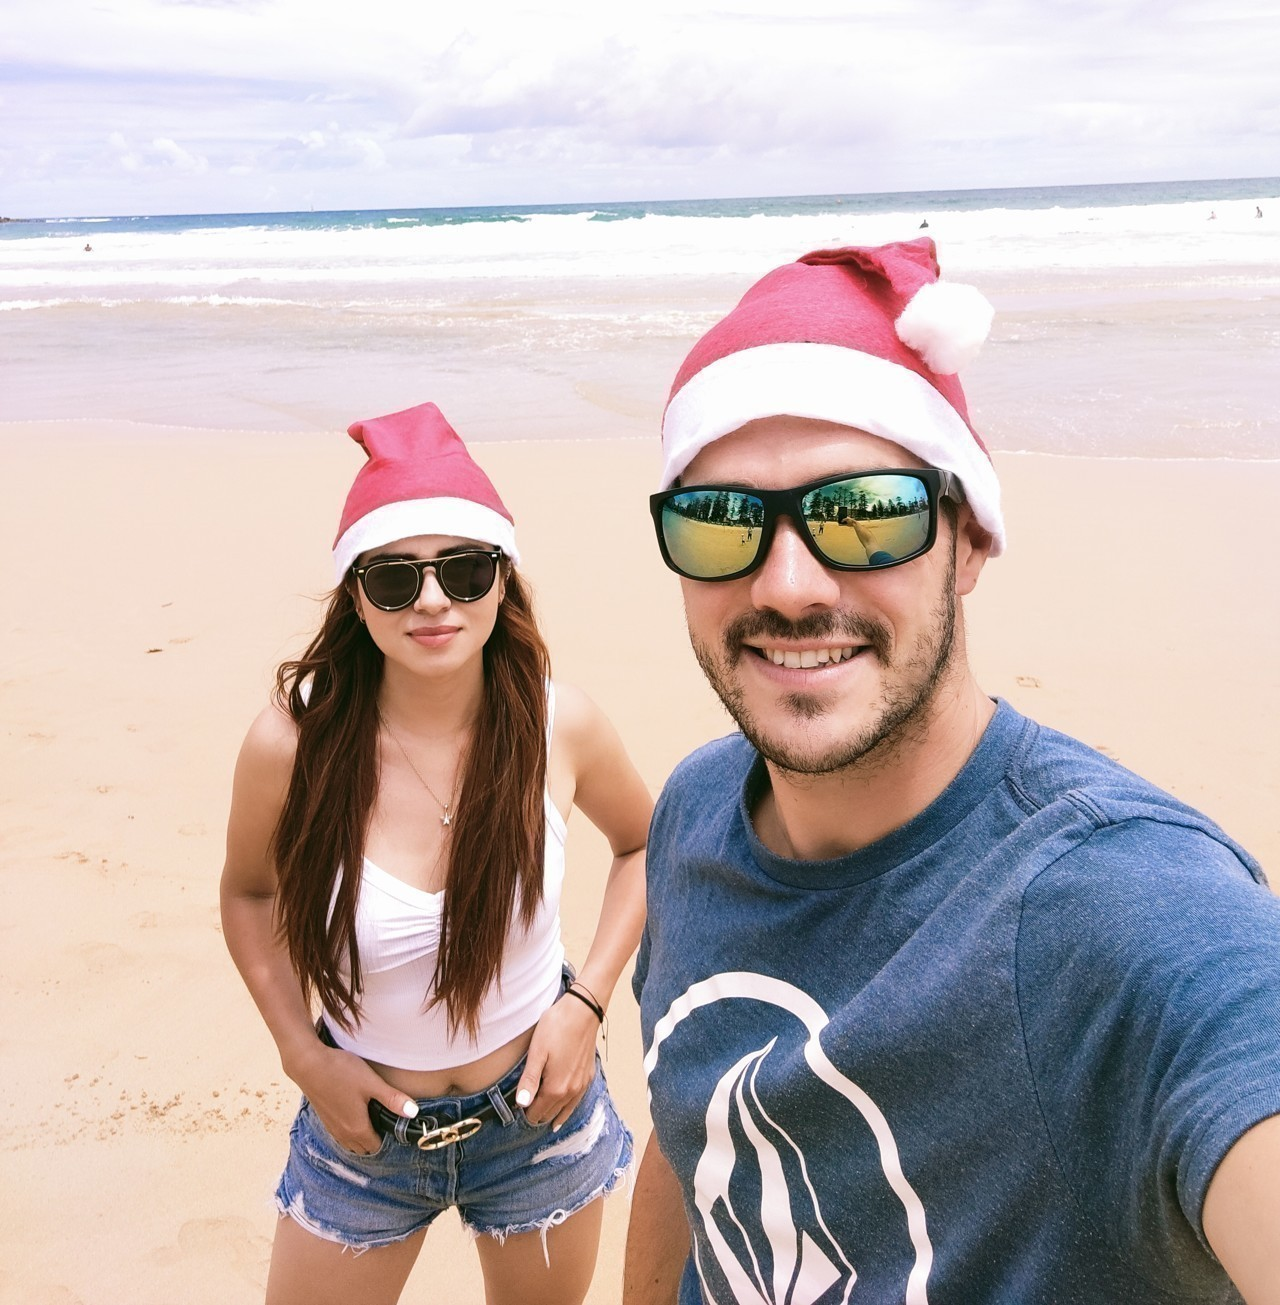 Emmanuel Caro and his friend Irma on a beach in Melbourne, Australia.